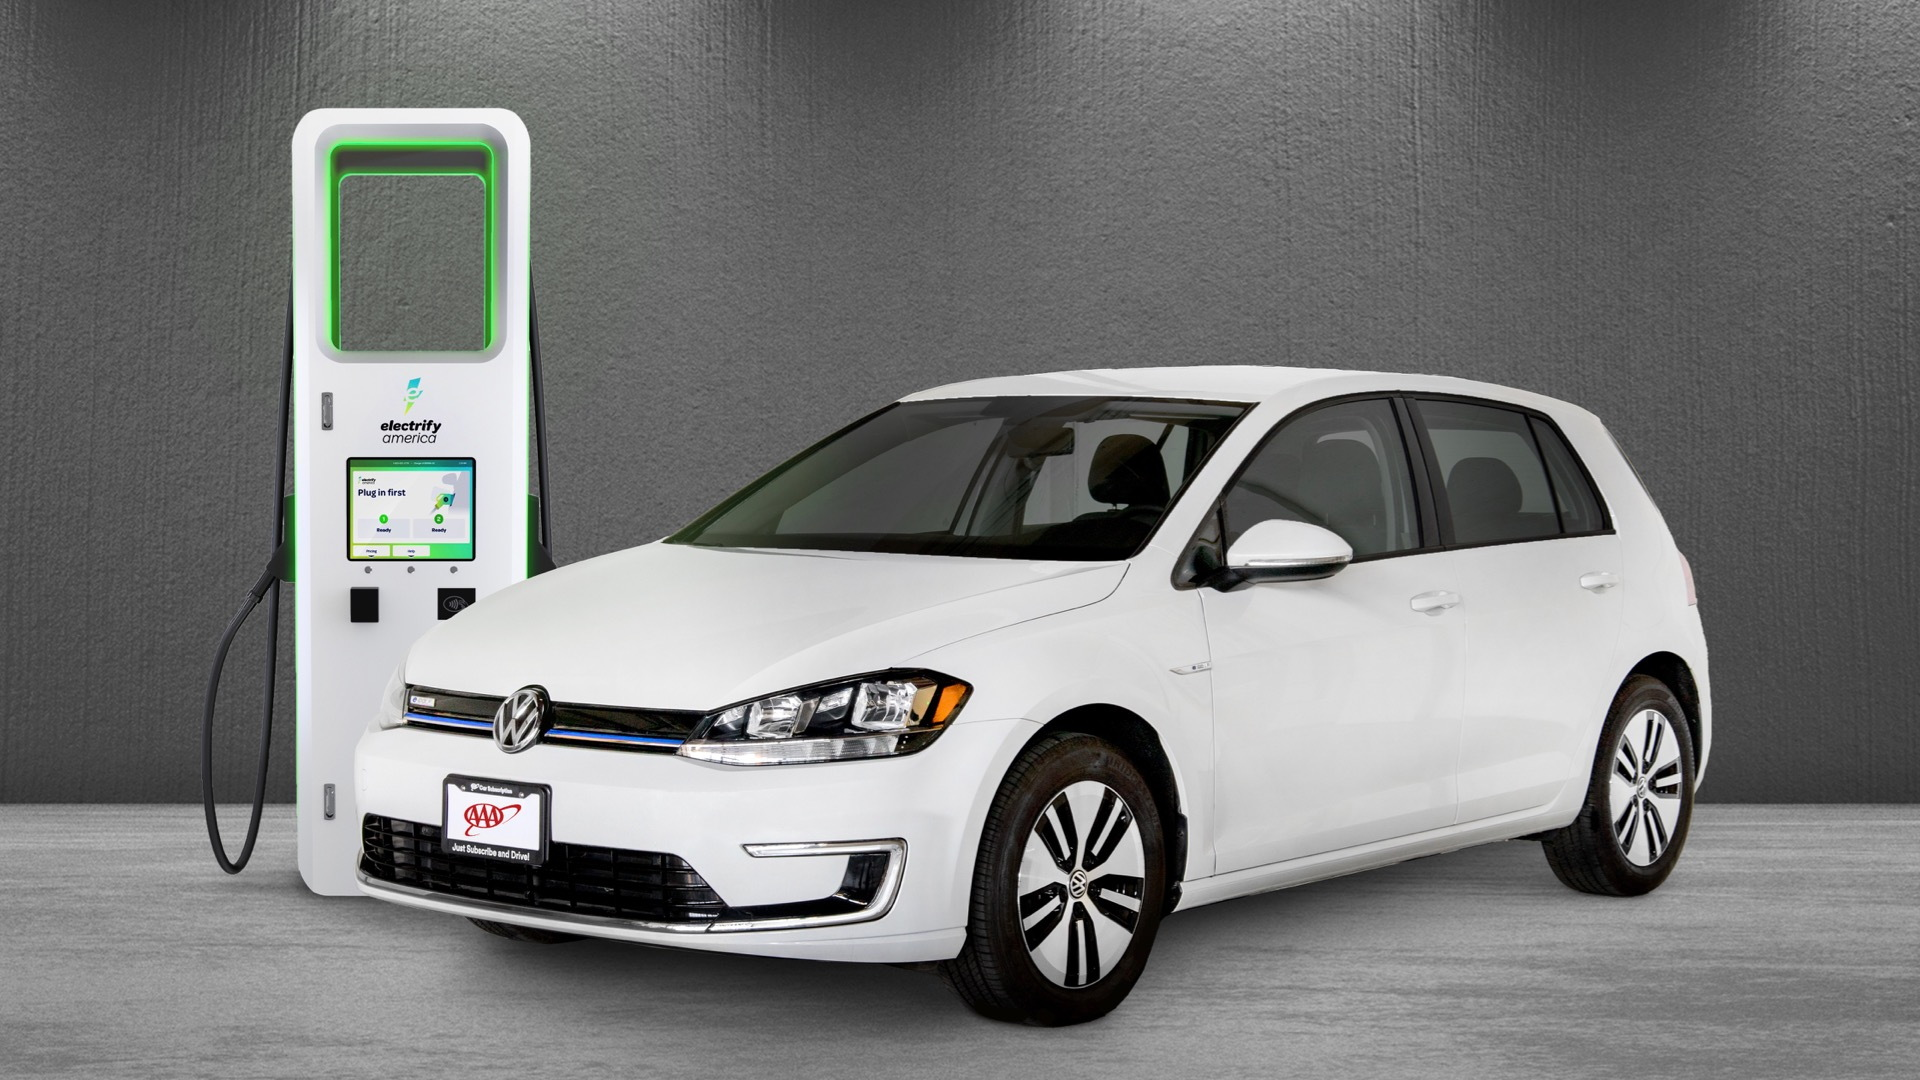 Electrify America and AAA subscription service